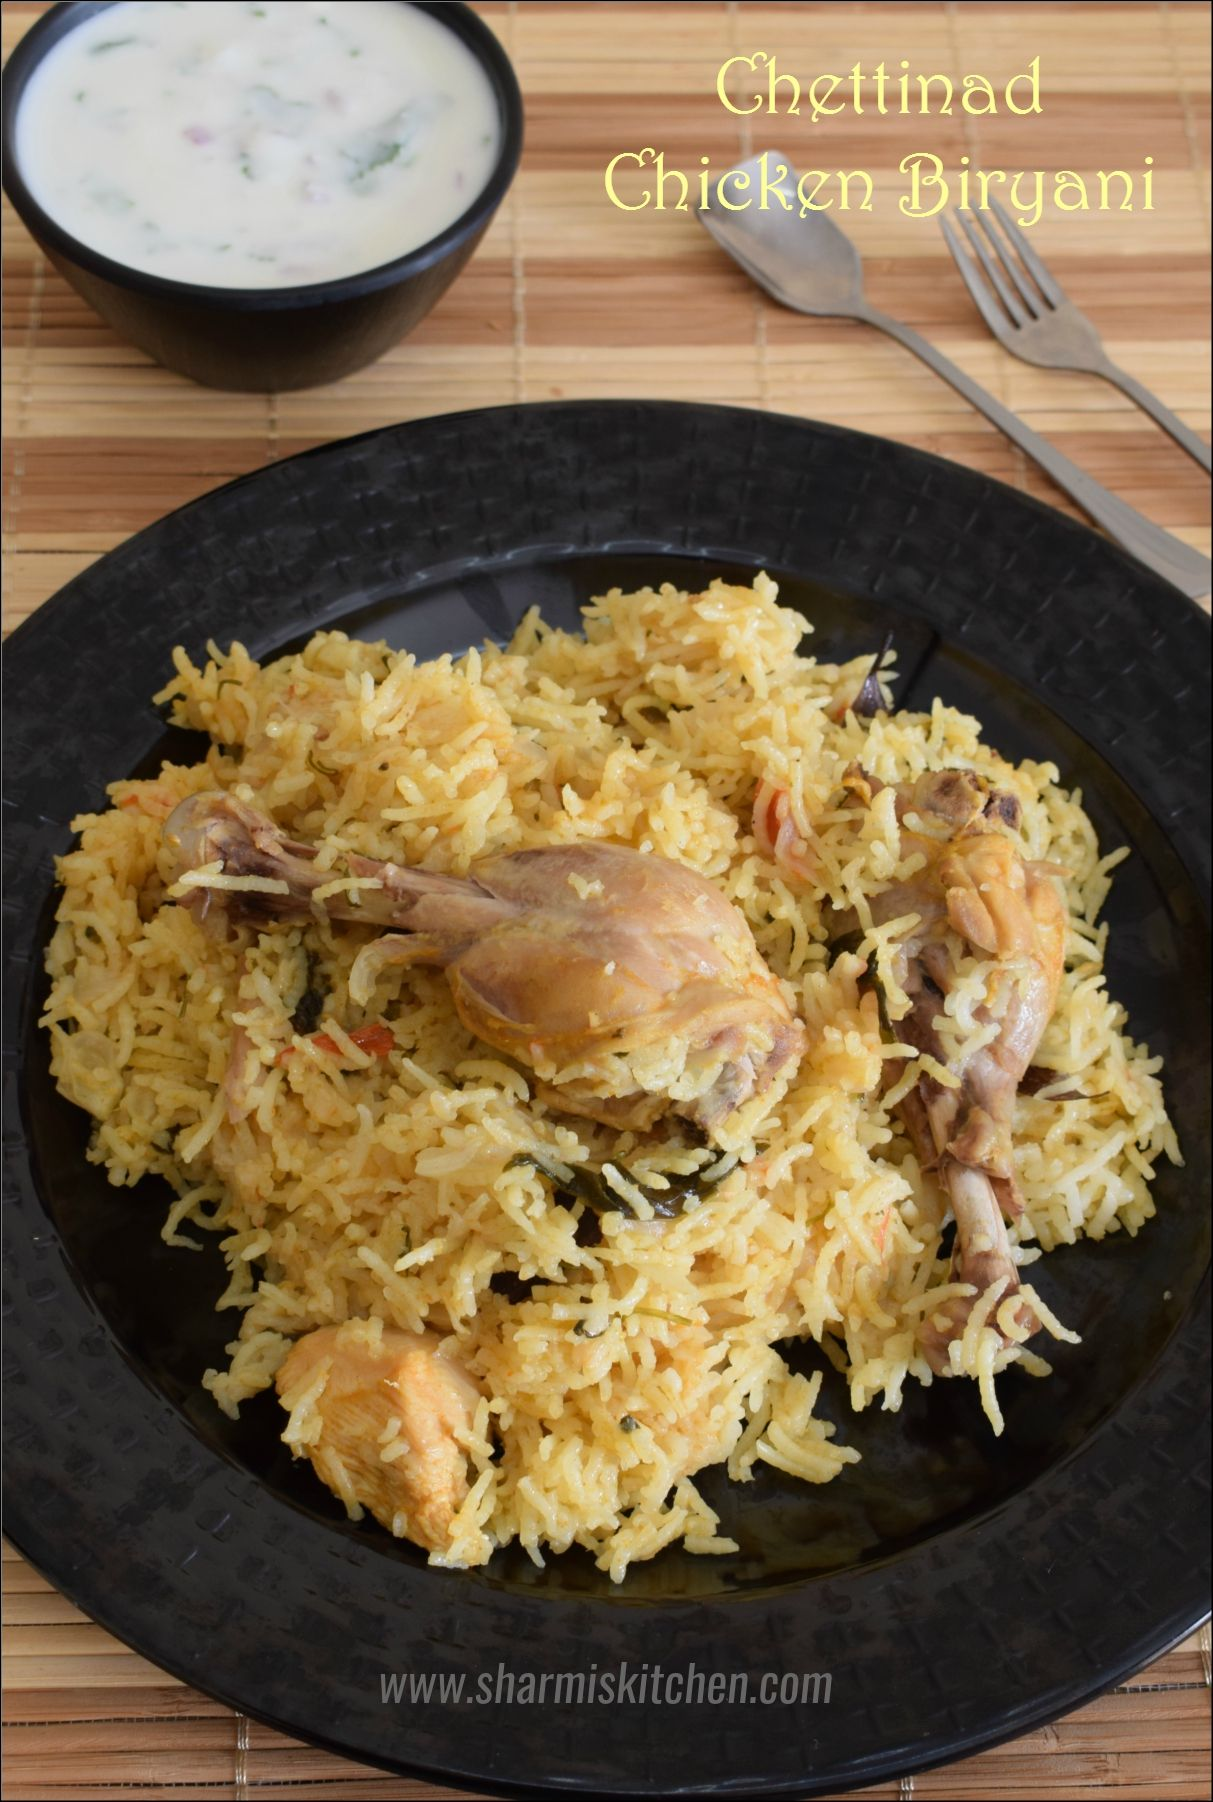 Chettinad chicken biryani is a popular dish from the region of chettinad chicken biryani is a popular dish from the region of chettinad biryani can be forumfinder Image collections